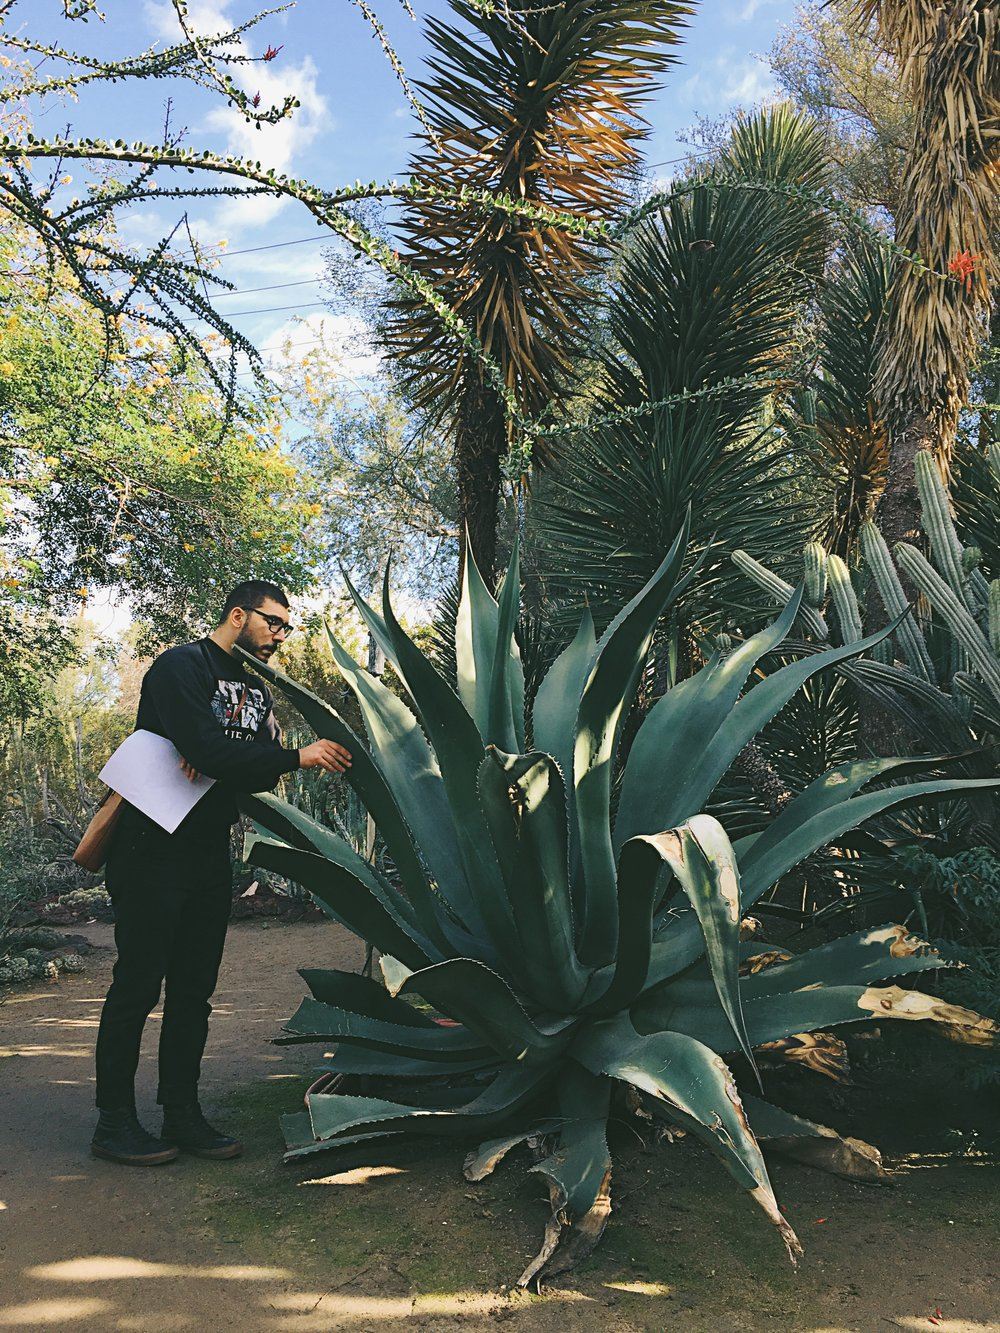 For your viewing pleasure: my Greek husband, carrying my purse, checking out a gigantic aloe plant.